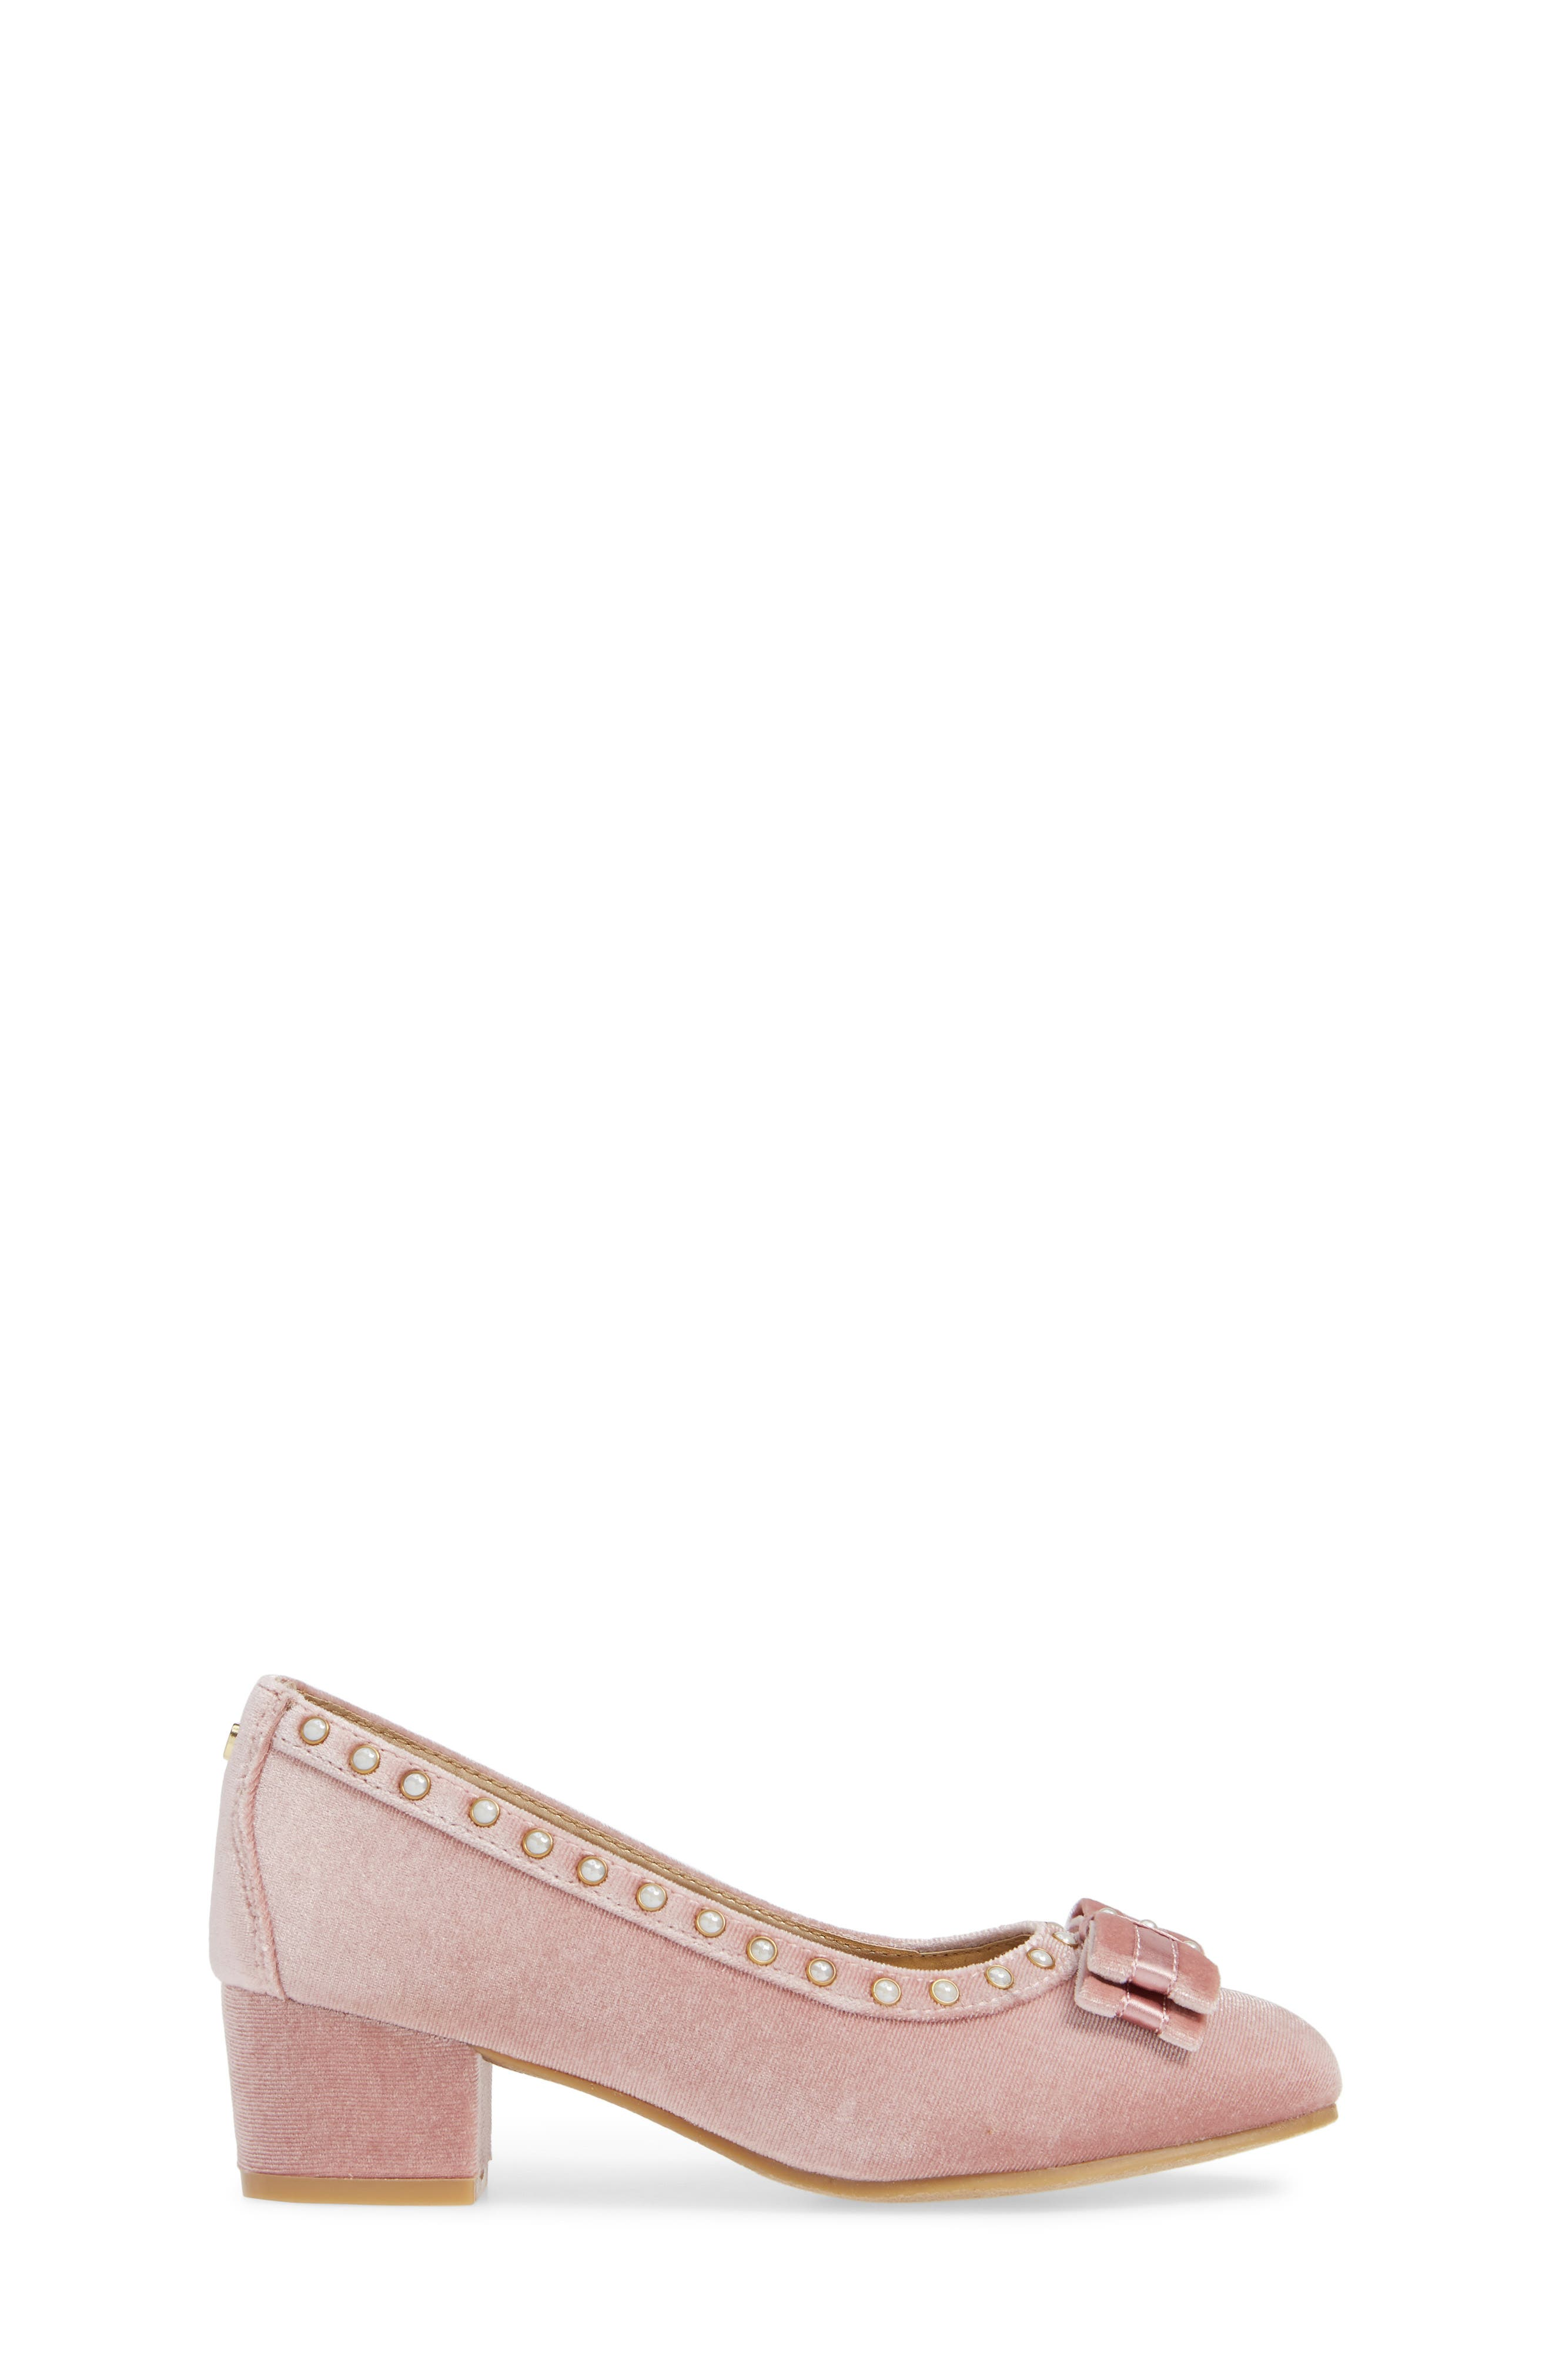 Evelyn Kammie Pump,                             Alternate thumbnail 3, color,                             MELLOW ROSE